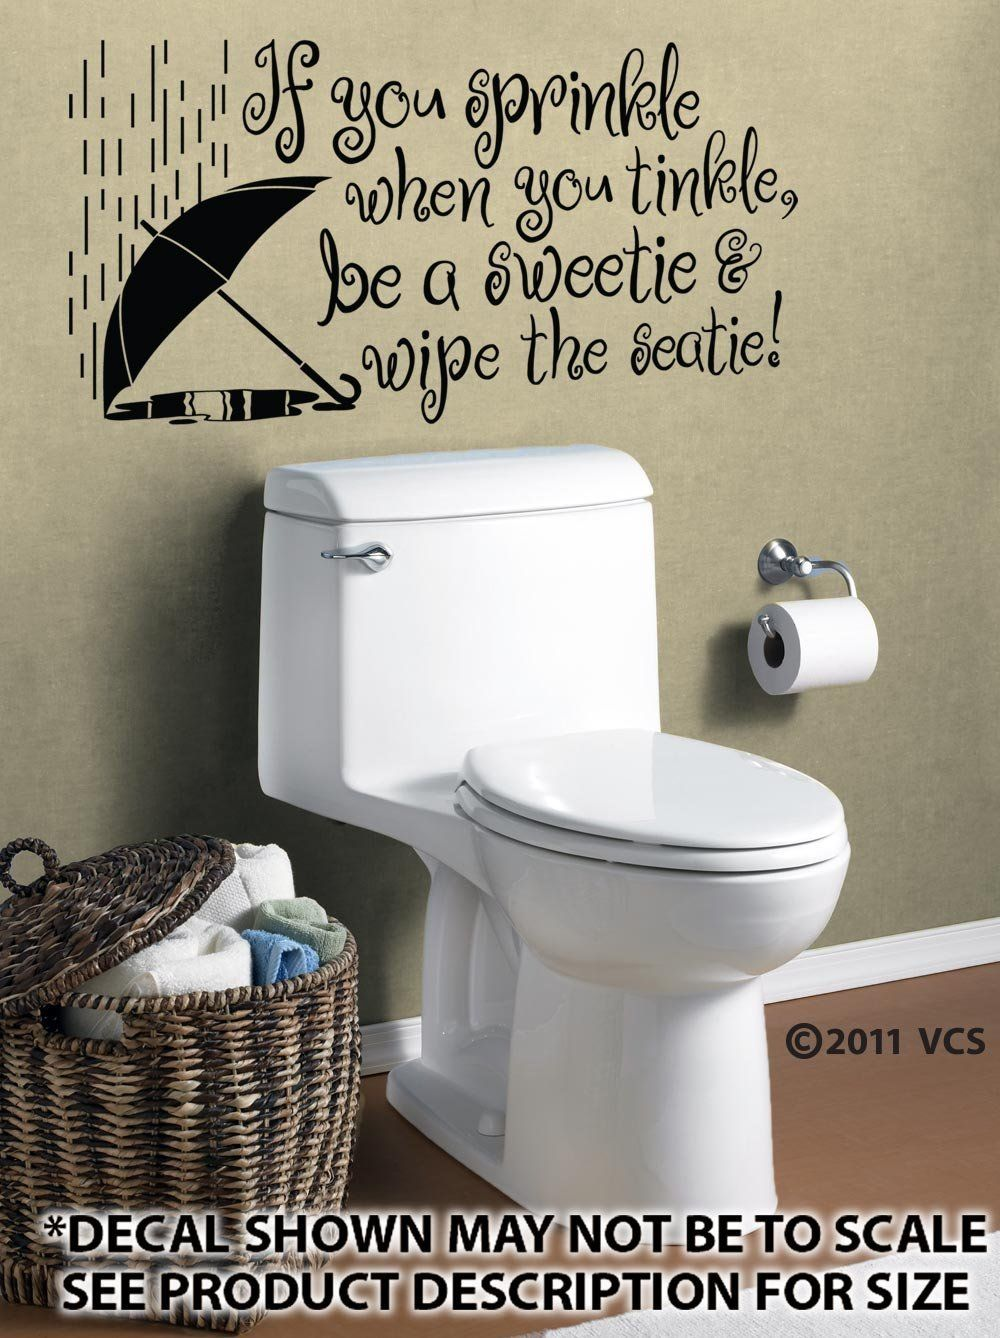 If You Sprinkle When Tinkle Wall Décor Sticker Vinyl Decal Bathroom Housewarming Gift